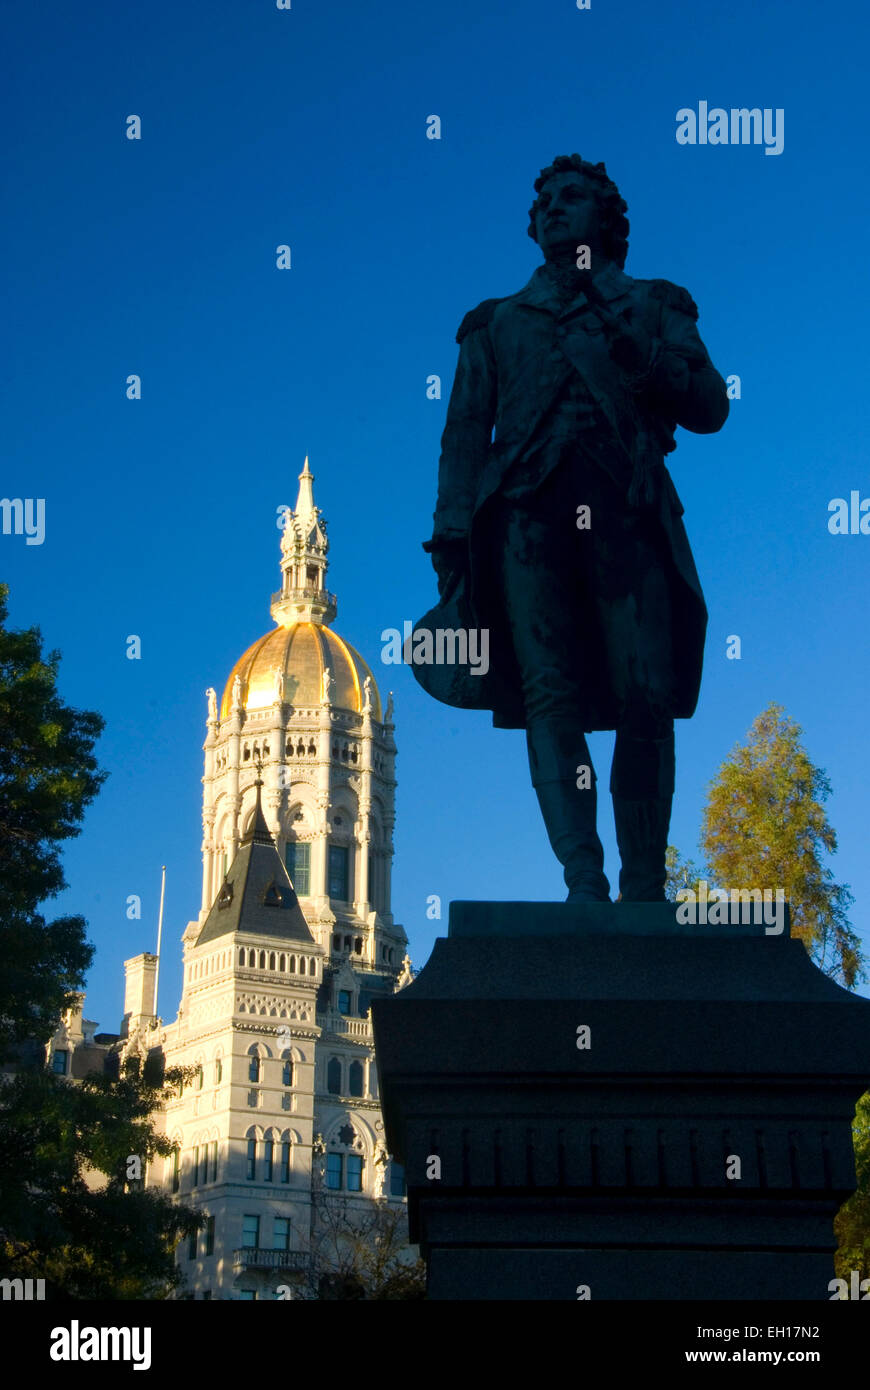 Connecticut State Capitol with Israel Putnam statue, Bushnell Park, Hartford, Connecticut - Stock Image